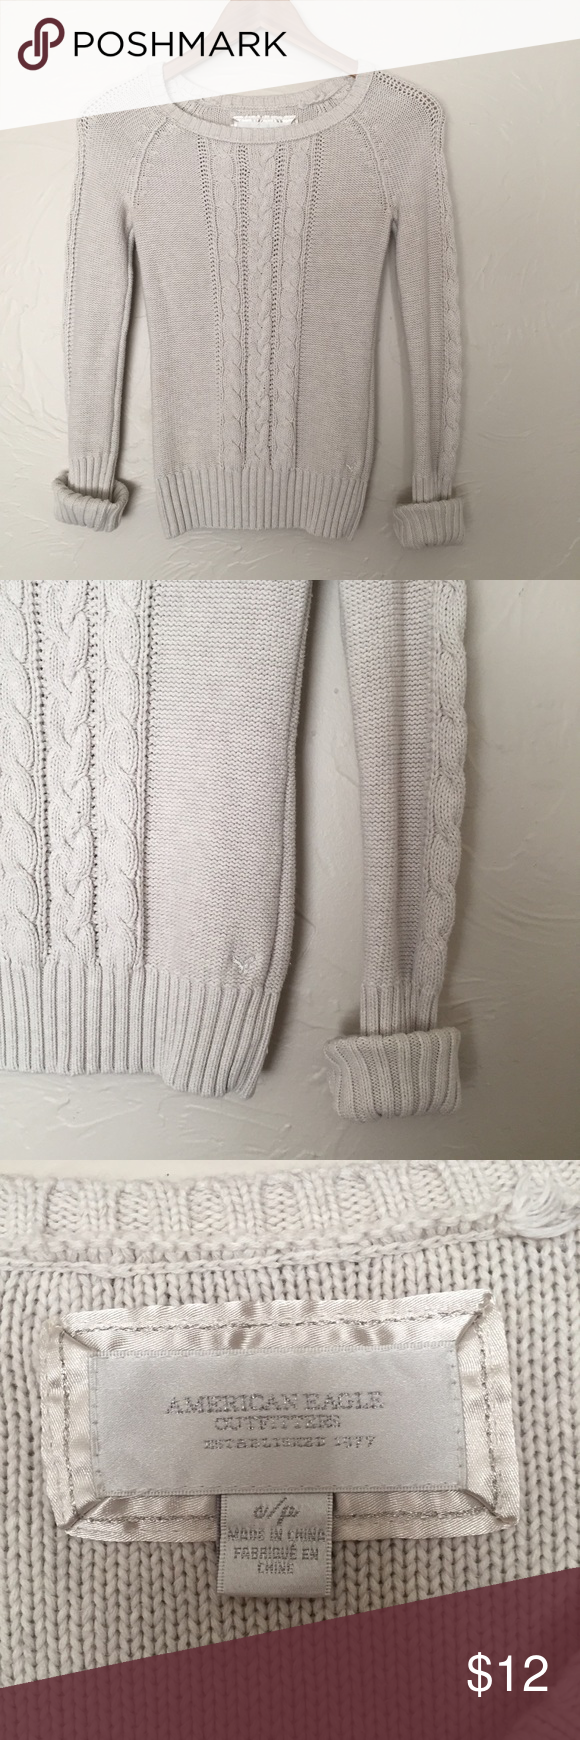 American Eagle cable knit sweater Perfect condition! Hardly worn! Fits more like an XS in my opinion. American Eagle Outfitters Sweaters